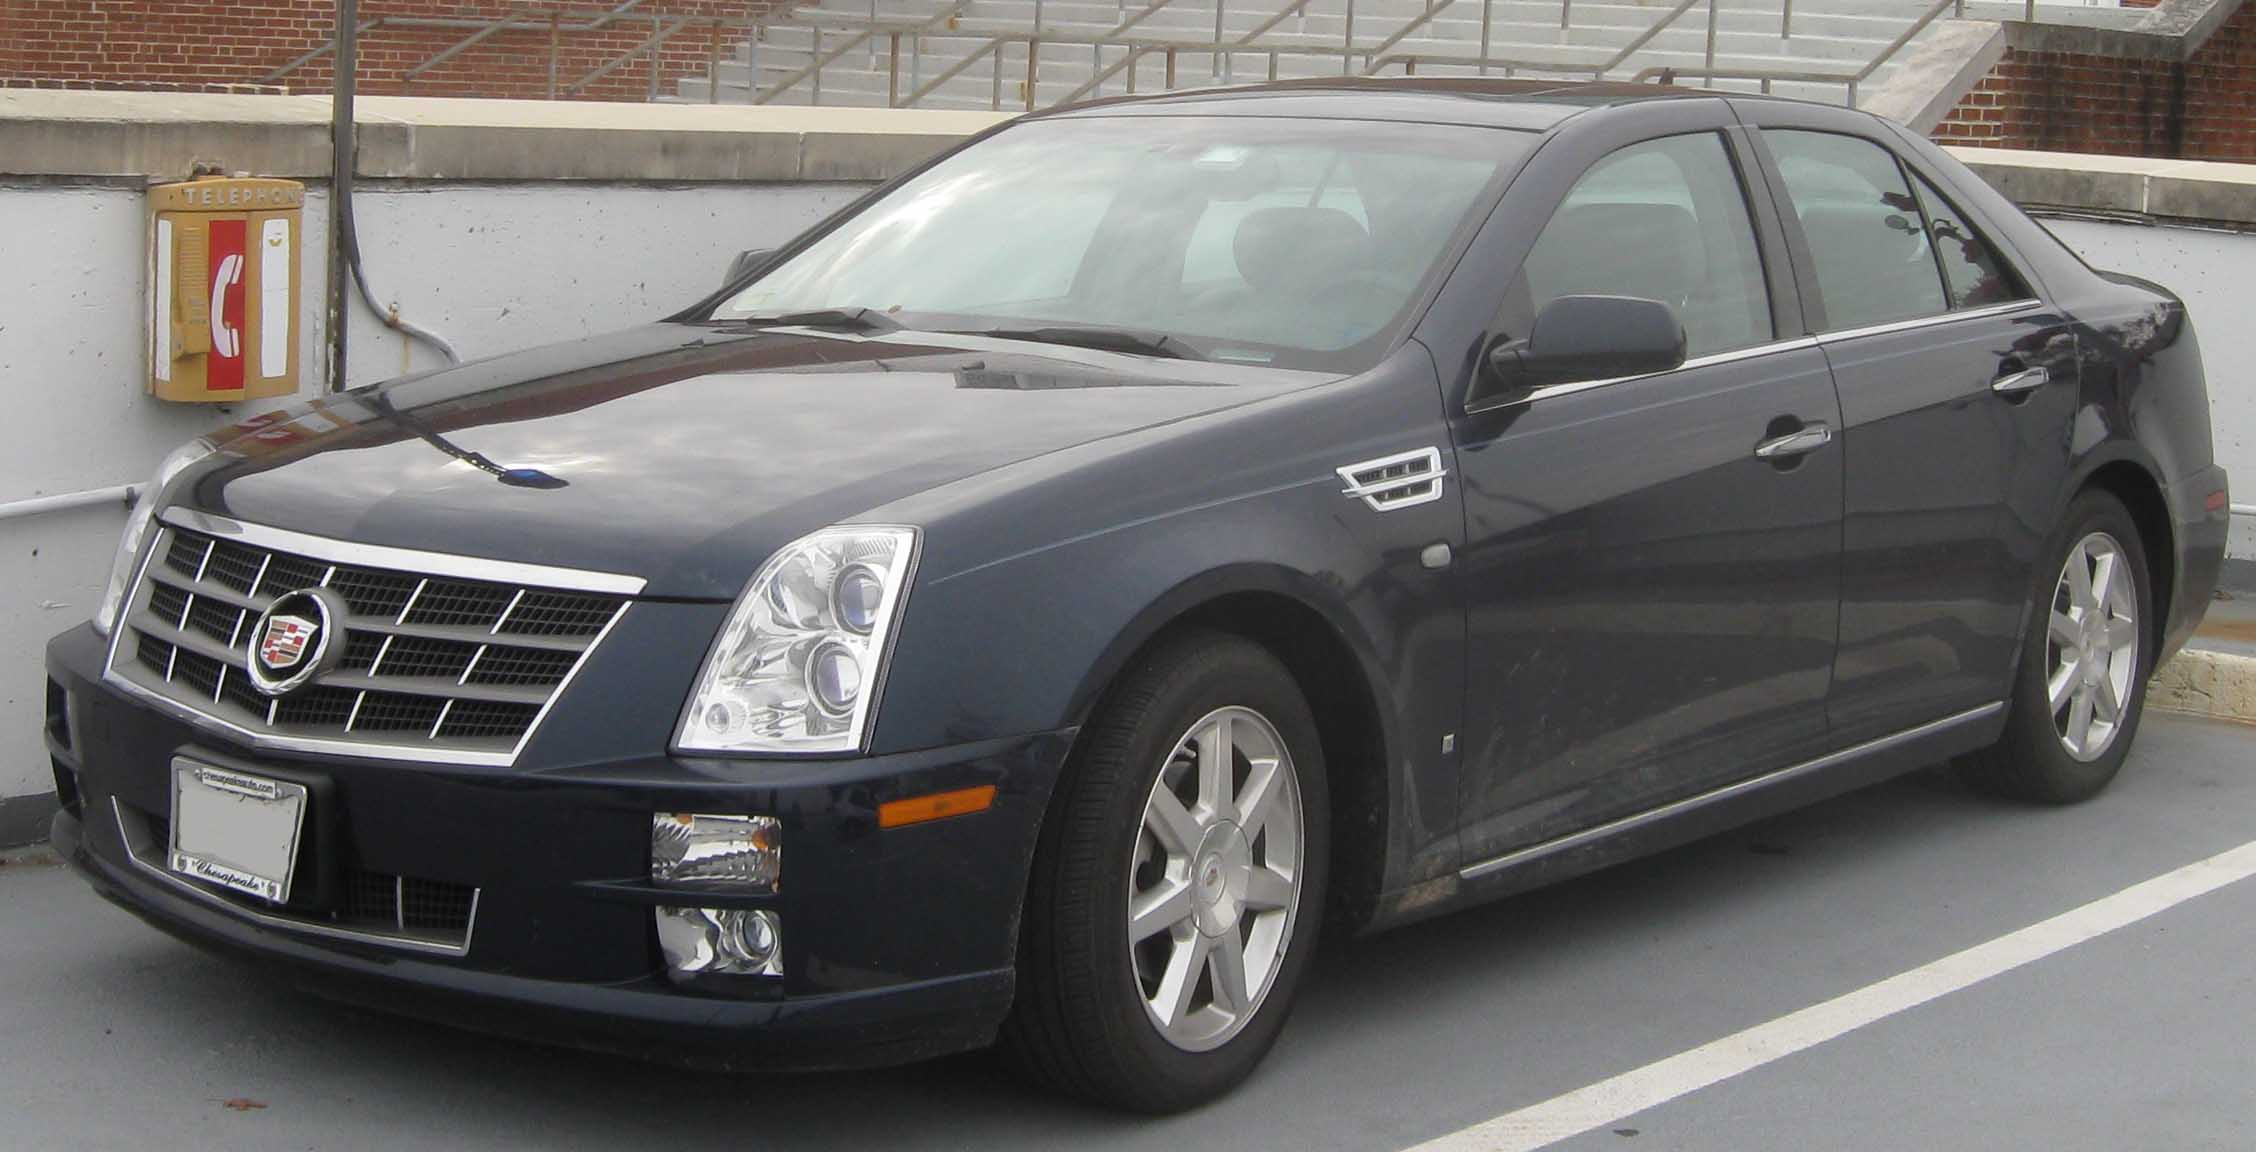 title en cadillac in auto ga cts south carfinder lot of cert on auctions copart abbb sale view salvage online black left atlanta